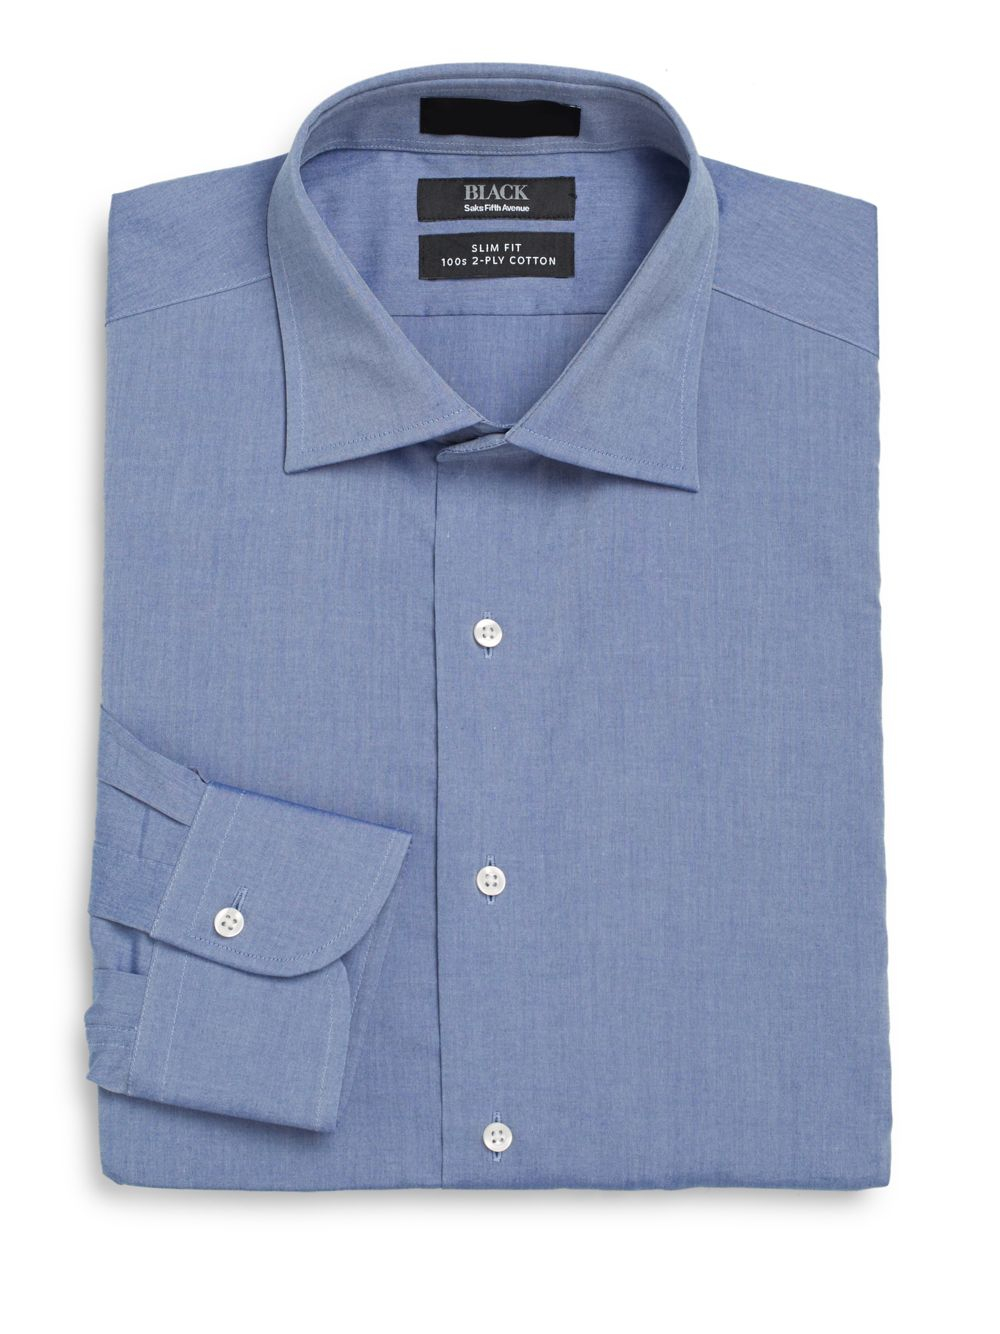 Lyst saks fifth avenue black label slim fit chambray two for 2 ply cotton dress shirt